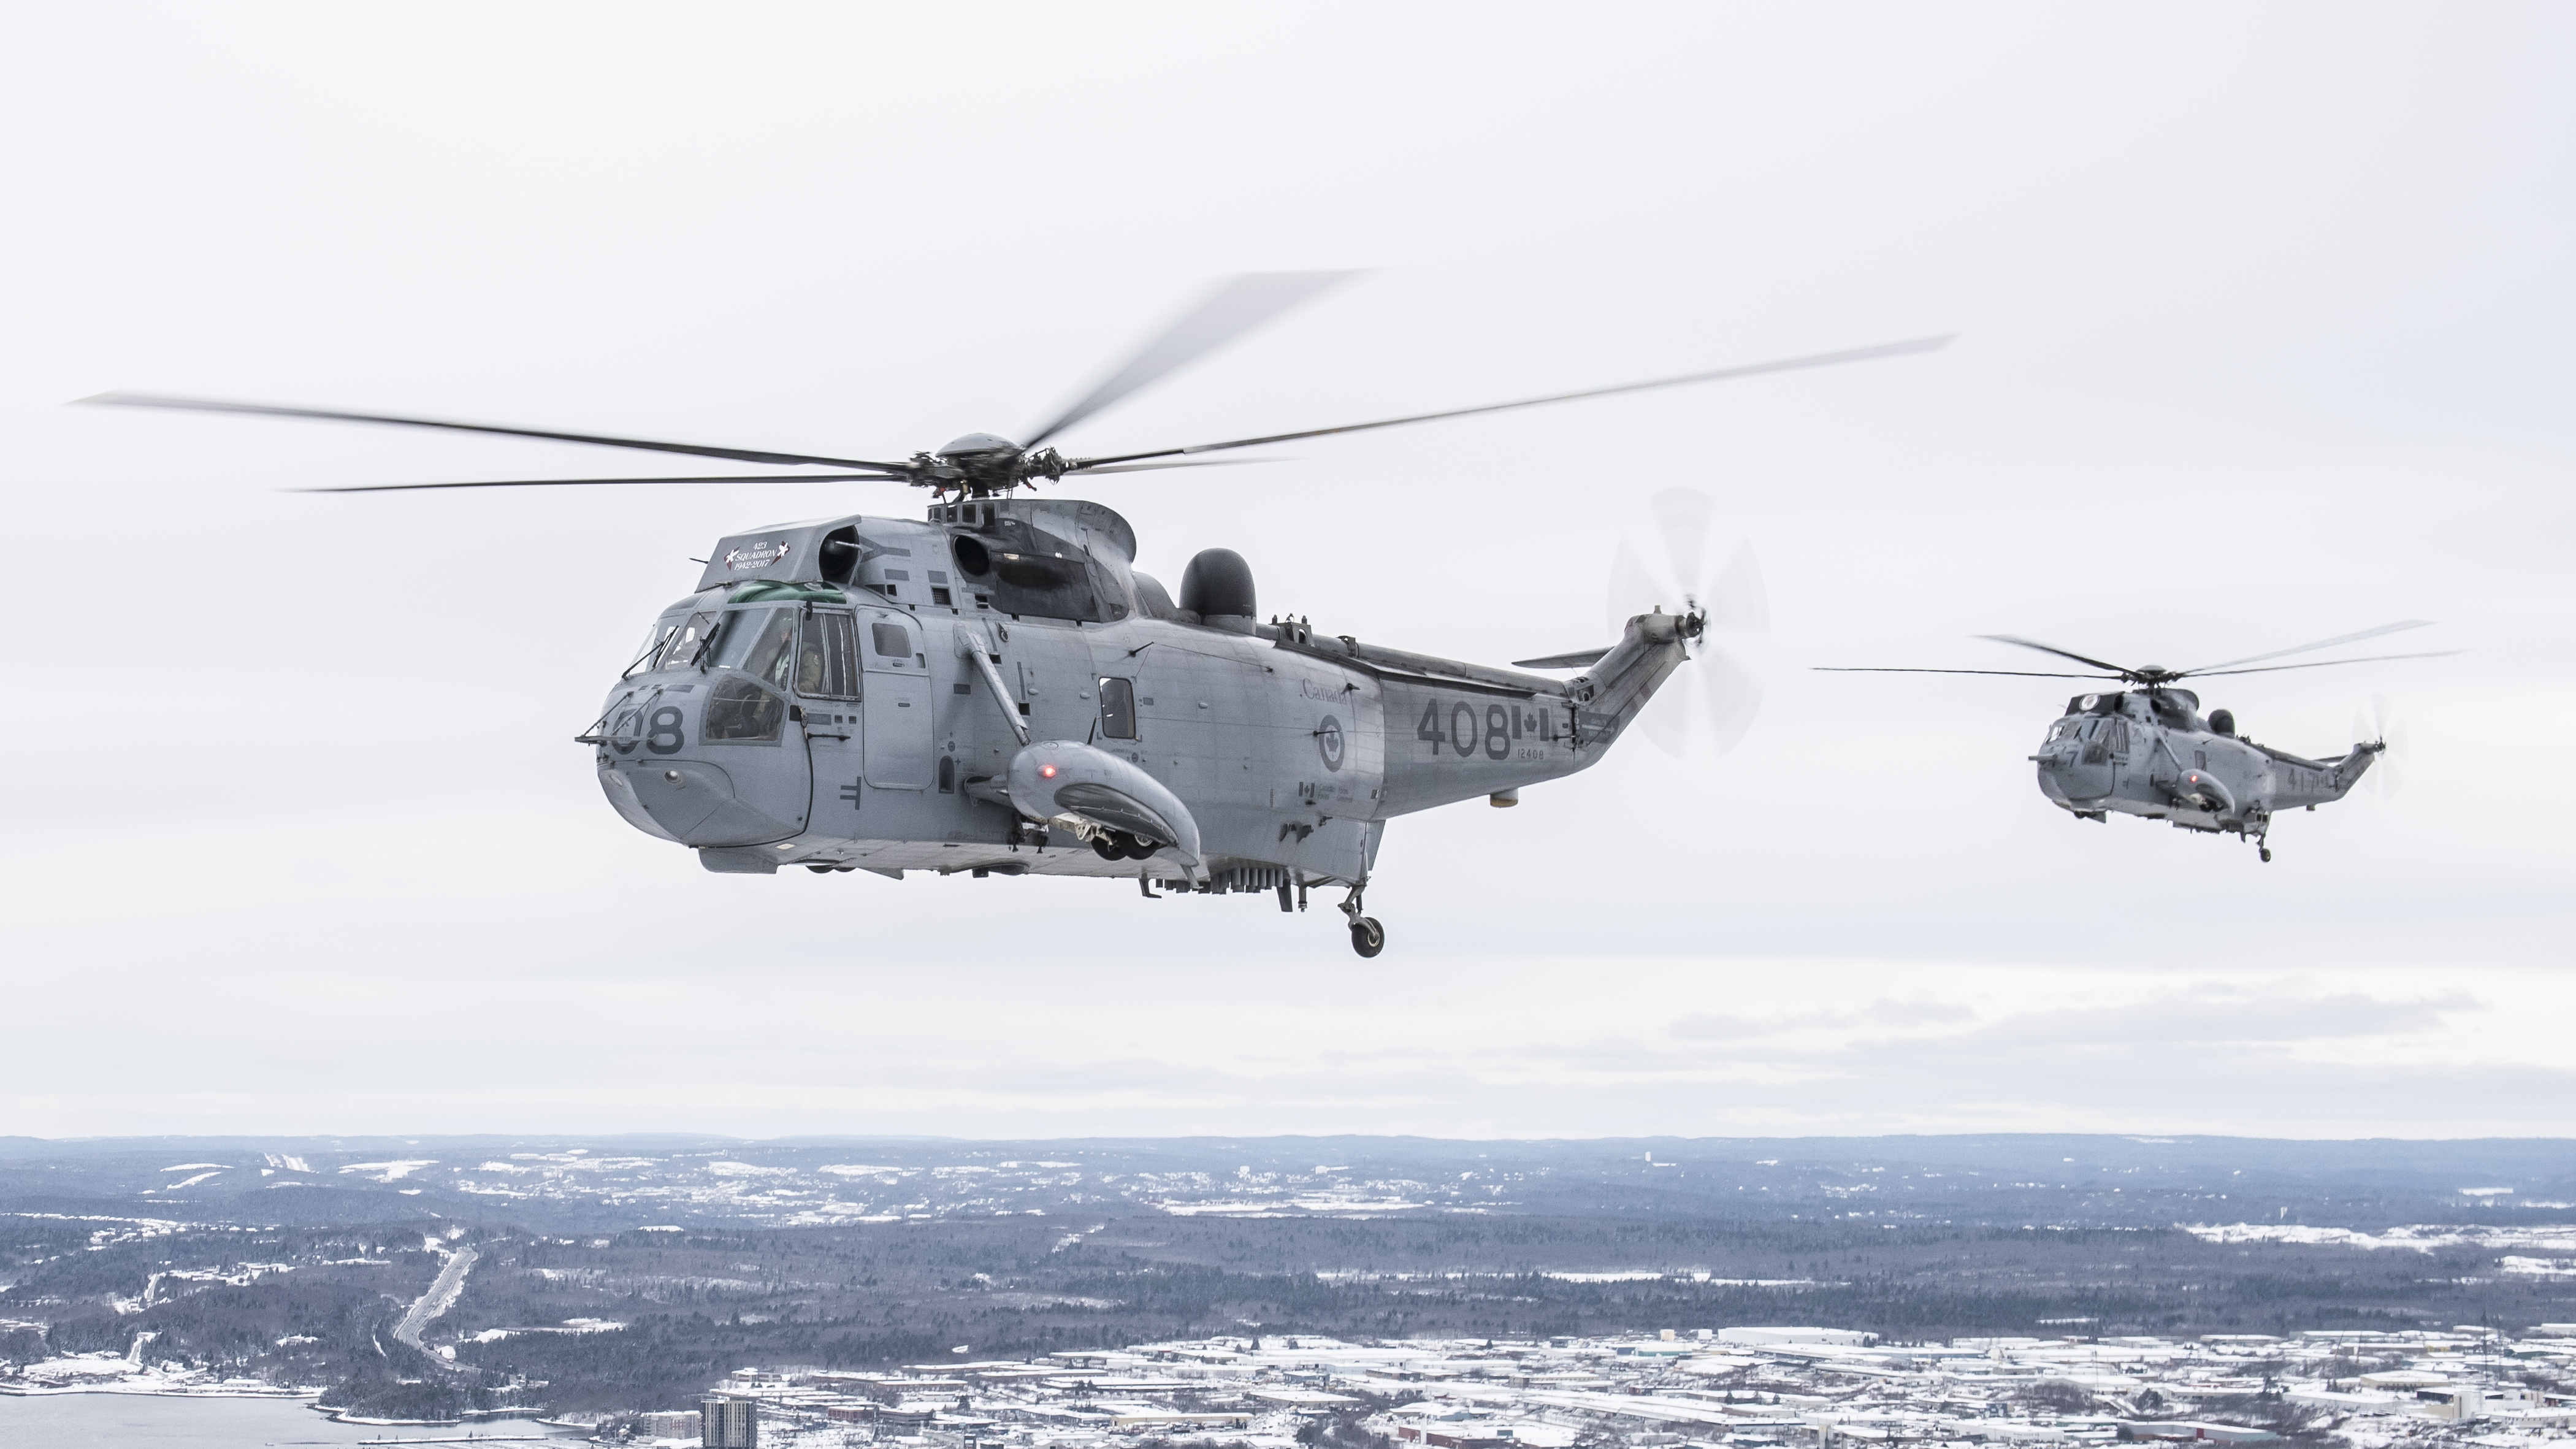 Two Sea King helicopters from 423 Maritime Helicopter Squadron, located at 12 Wing Shearwater, Nova Scotia, fly over the Halifax-Dartmouth area on January 19, 2018, in preparation for the squadron's final Sea King flight on January 26. PHOTO: Corporal Anthony Laviolette, SW04-2018-0020-021